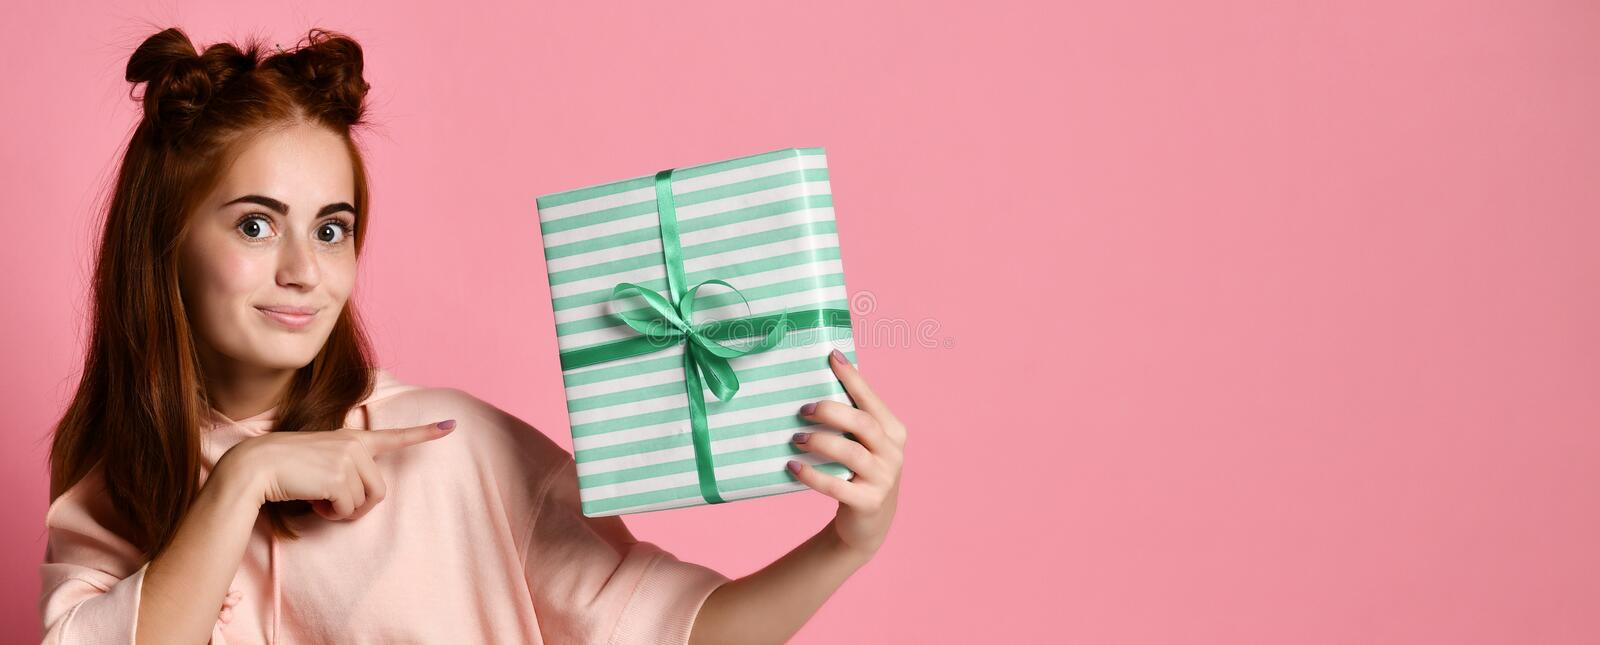 Portrait of a pretty smiling redhead girl holding gift box and looking at it, isolated over color pink background royalty free stock image